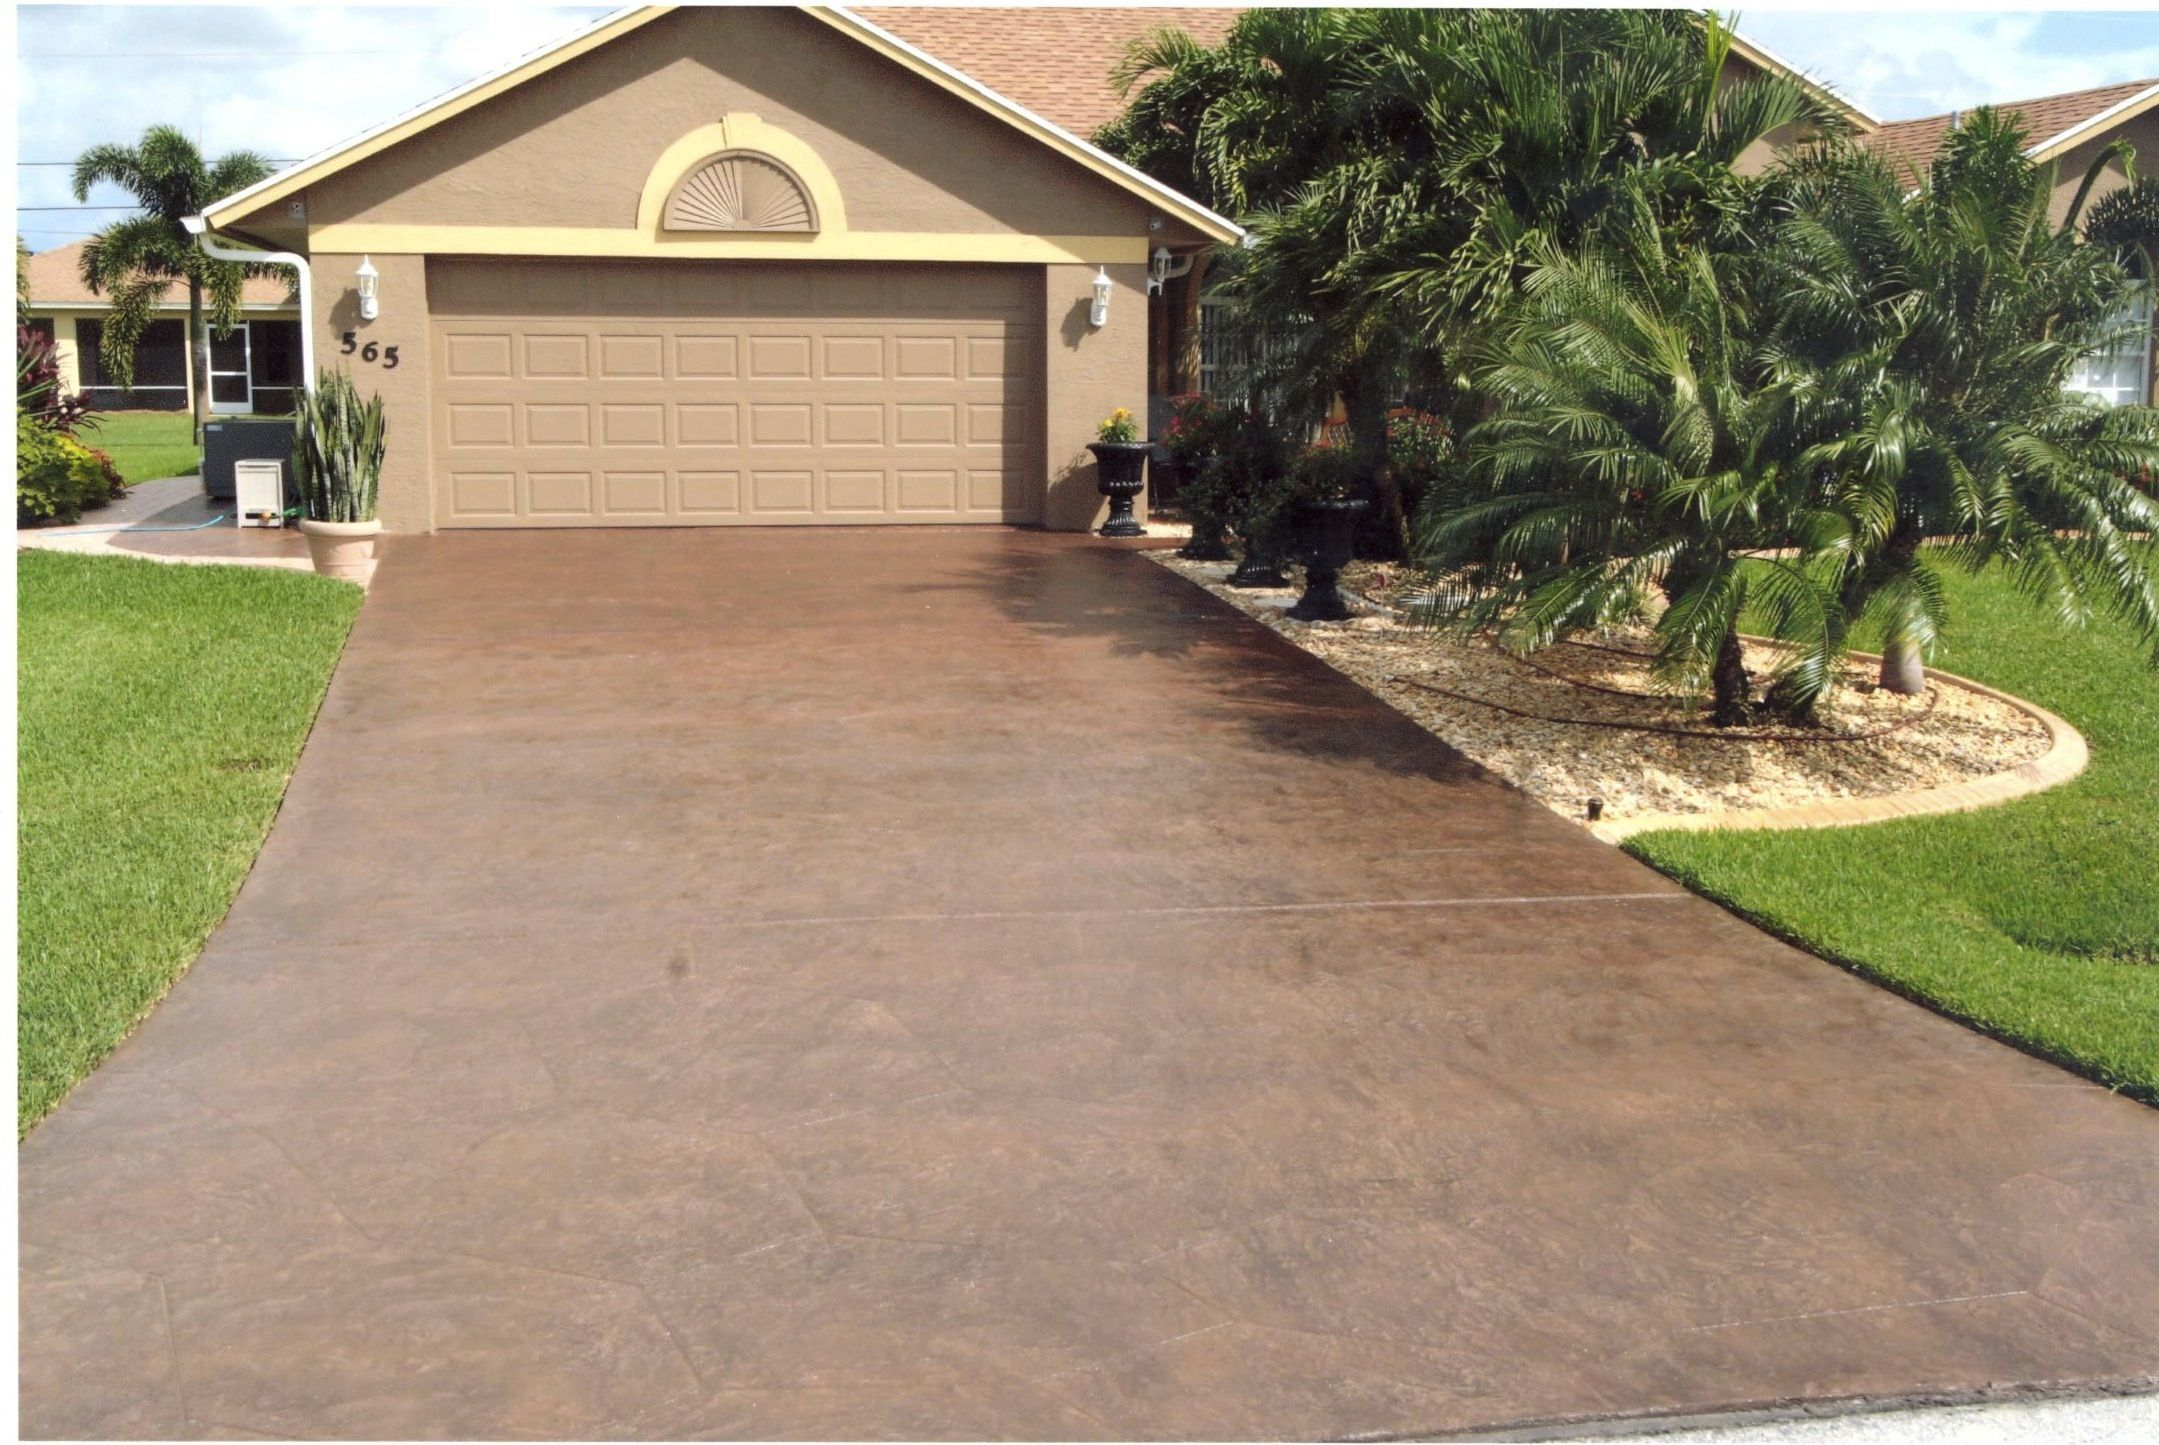 F211cde732df239620f2fa454dbba00c Jpg 2 159 1 445 Pixels Stained Concrete Driveway Concrete Driveways Outdoor Concrete Stain